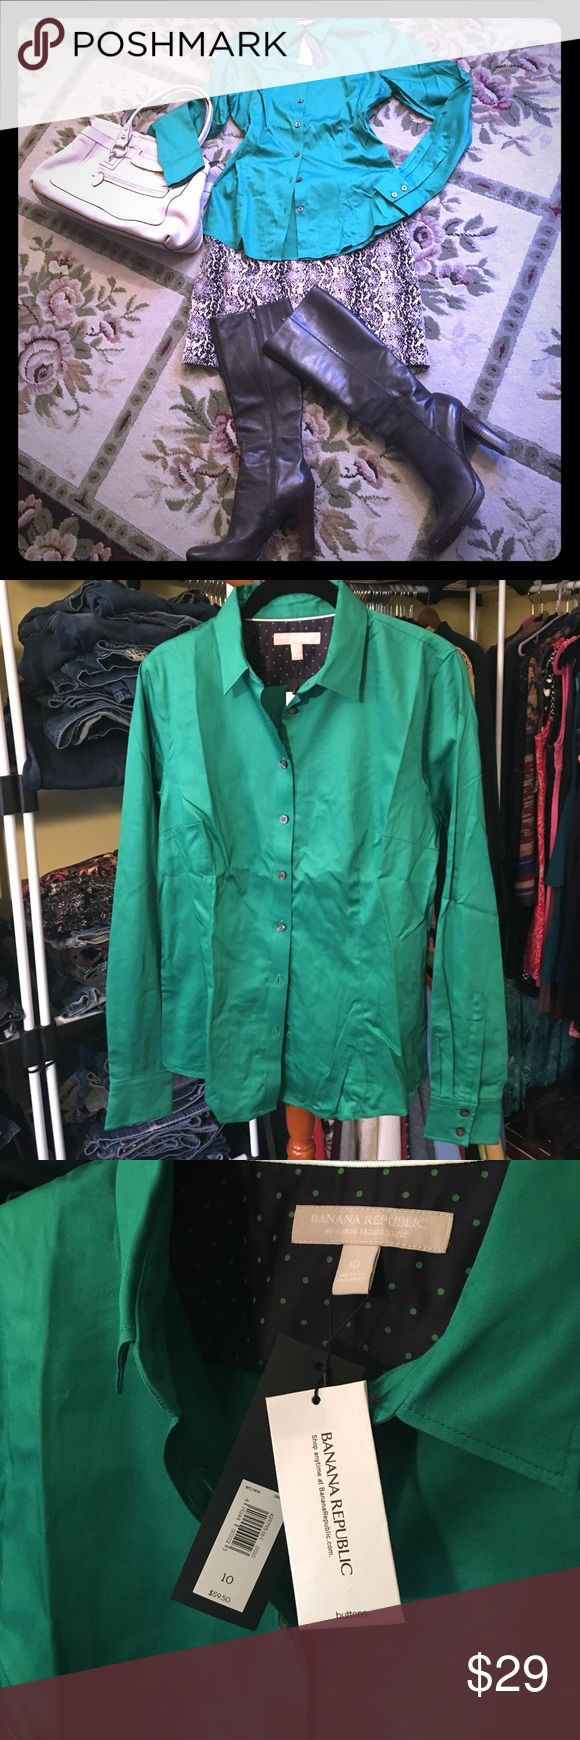 """🆕 Banana Republic Blouse BNWT Banana Republic no-iron tailored blouse. Super stretch. Gorgeous Kelly green. 19"""" pit to pit. 25"""" shoulder to hem. Free People skirt, Charles by Charles David boots, and Talbots purse sold separately. Banana Republic Tops Button Down Shirts"""